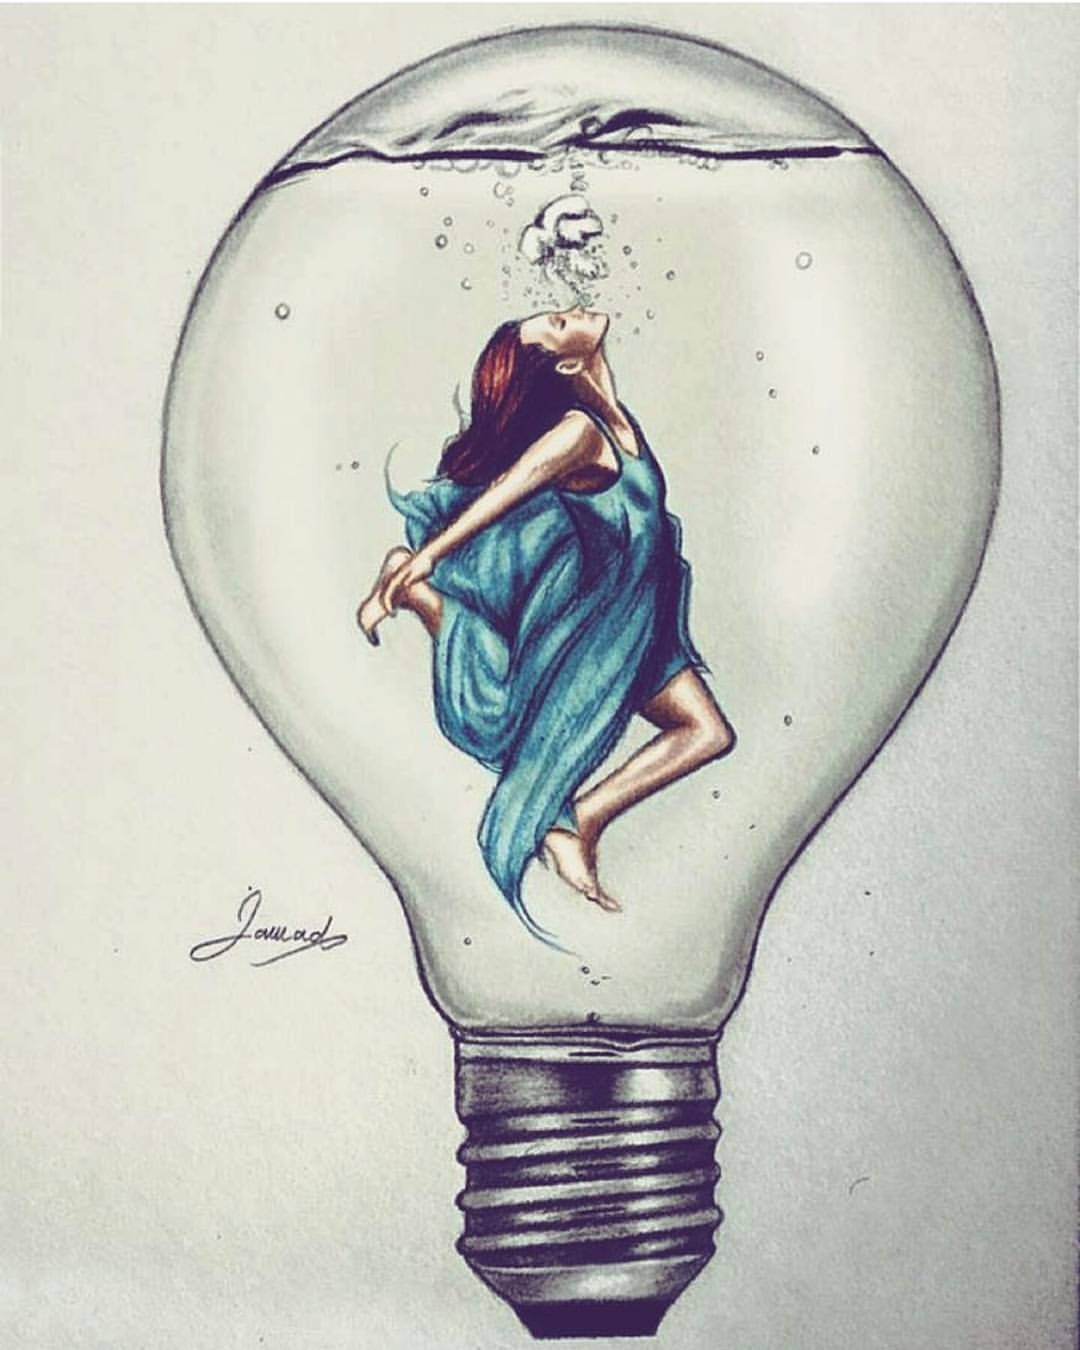 Artofdrawingg Art Drawings Beautiful Art Drawings Sketches Creative Cool Art Drawings From fine art, sculpture, installations and more, find out here what we can do with your treasured memories to make that piece of meaningful art to hang in your home. pinterest